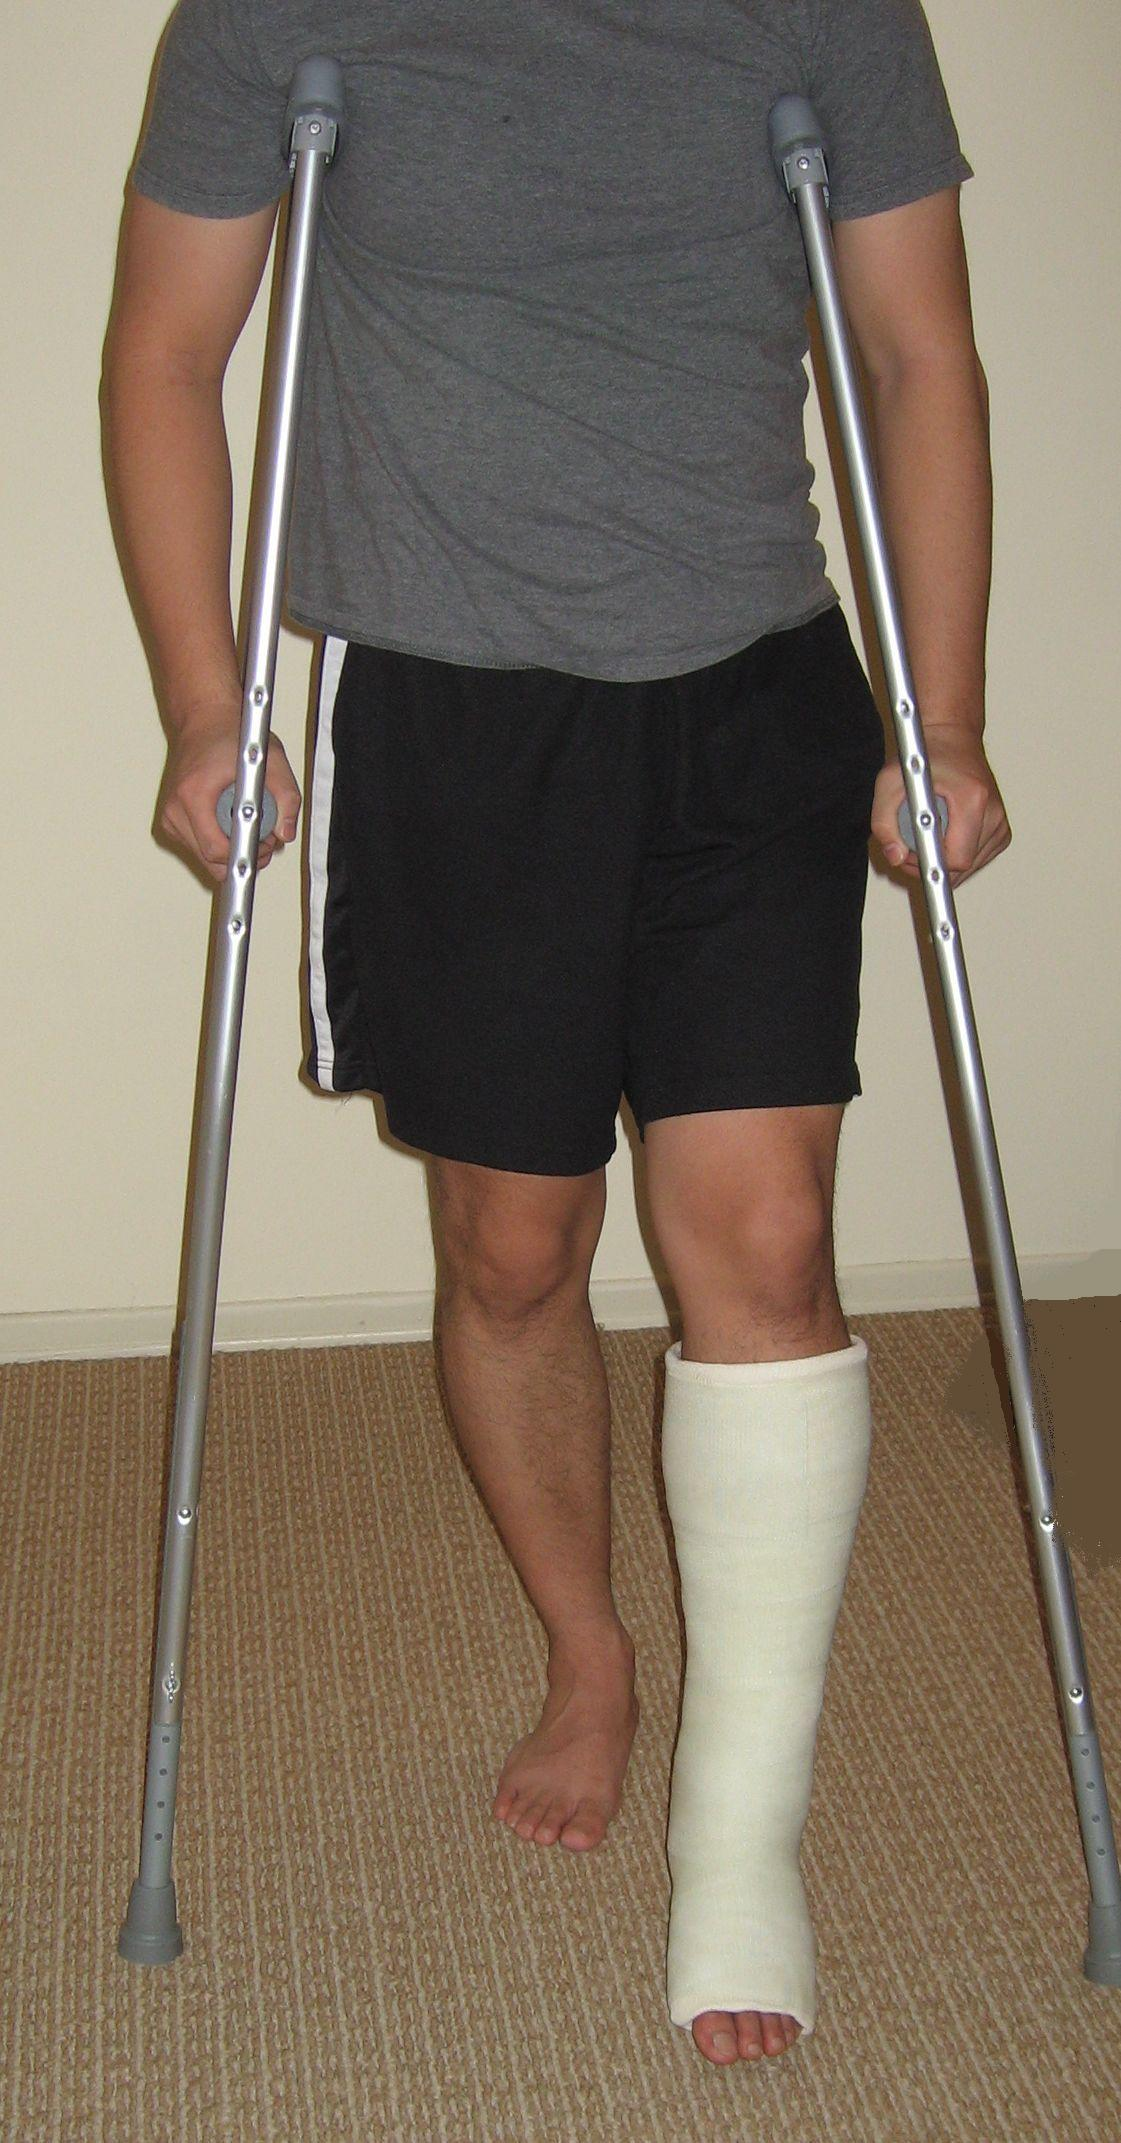 standing on crutches